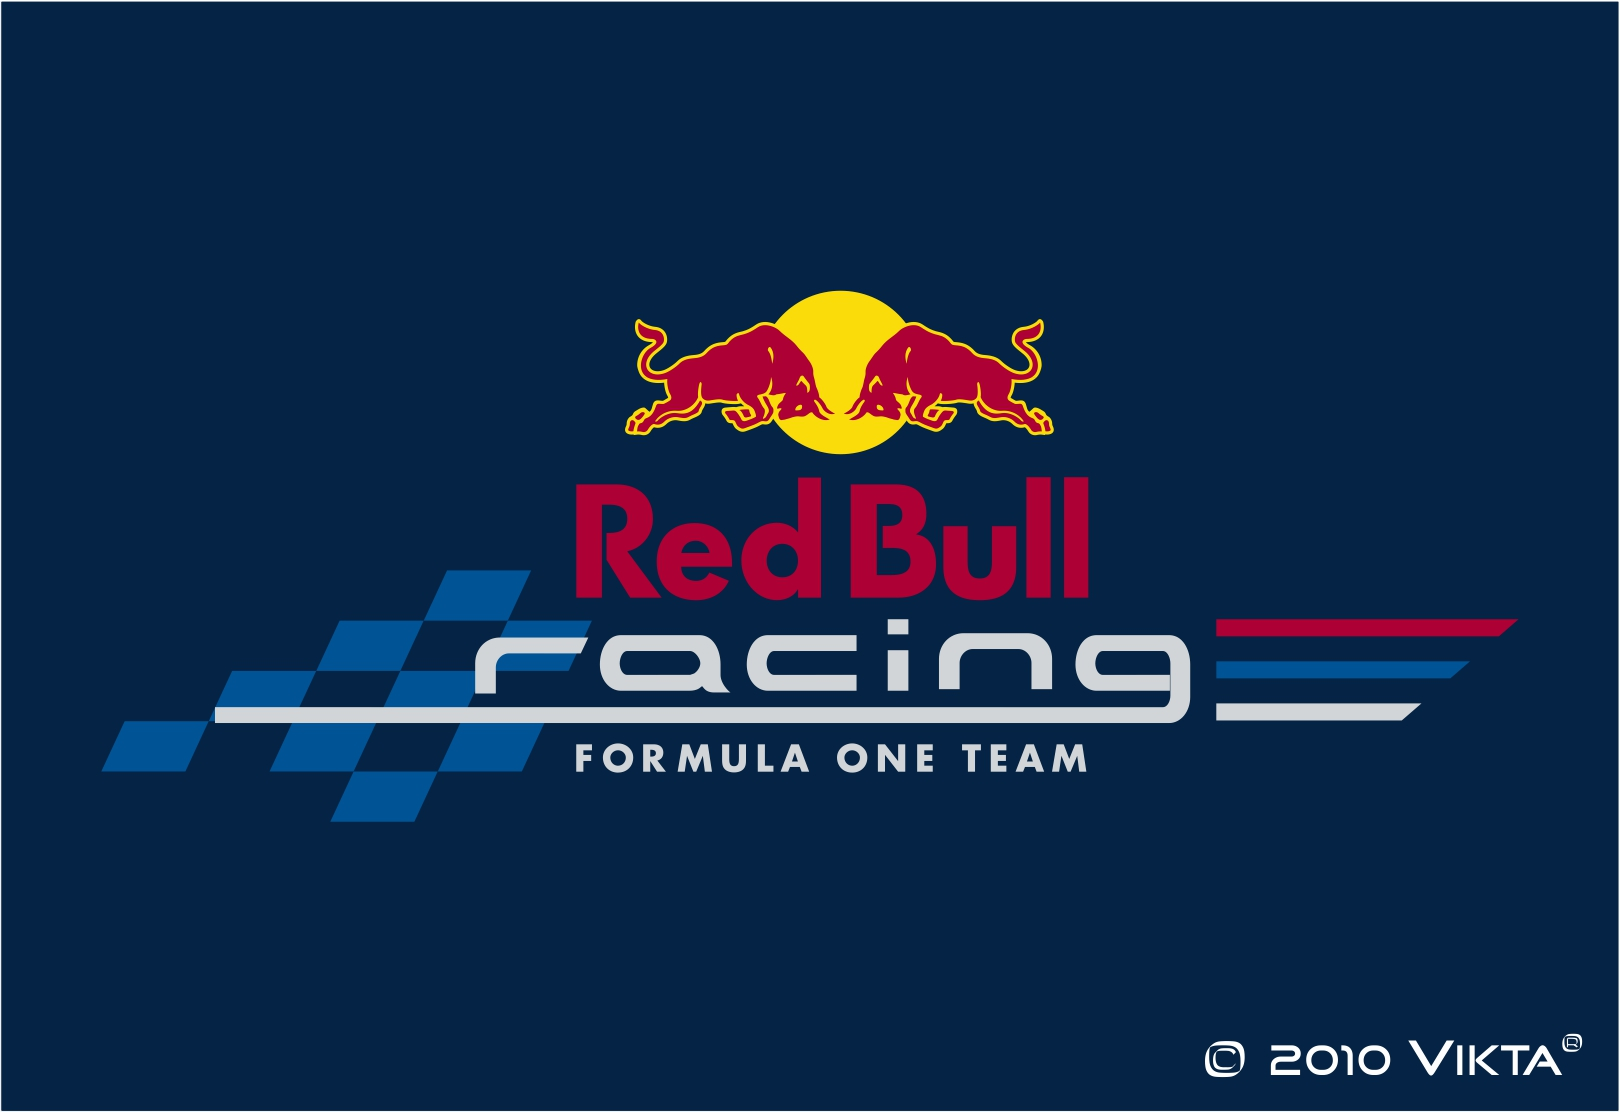 M Letter Logo Wallpaper Hd NASA Red Bull (page 2)...